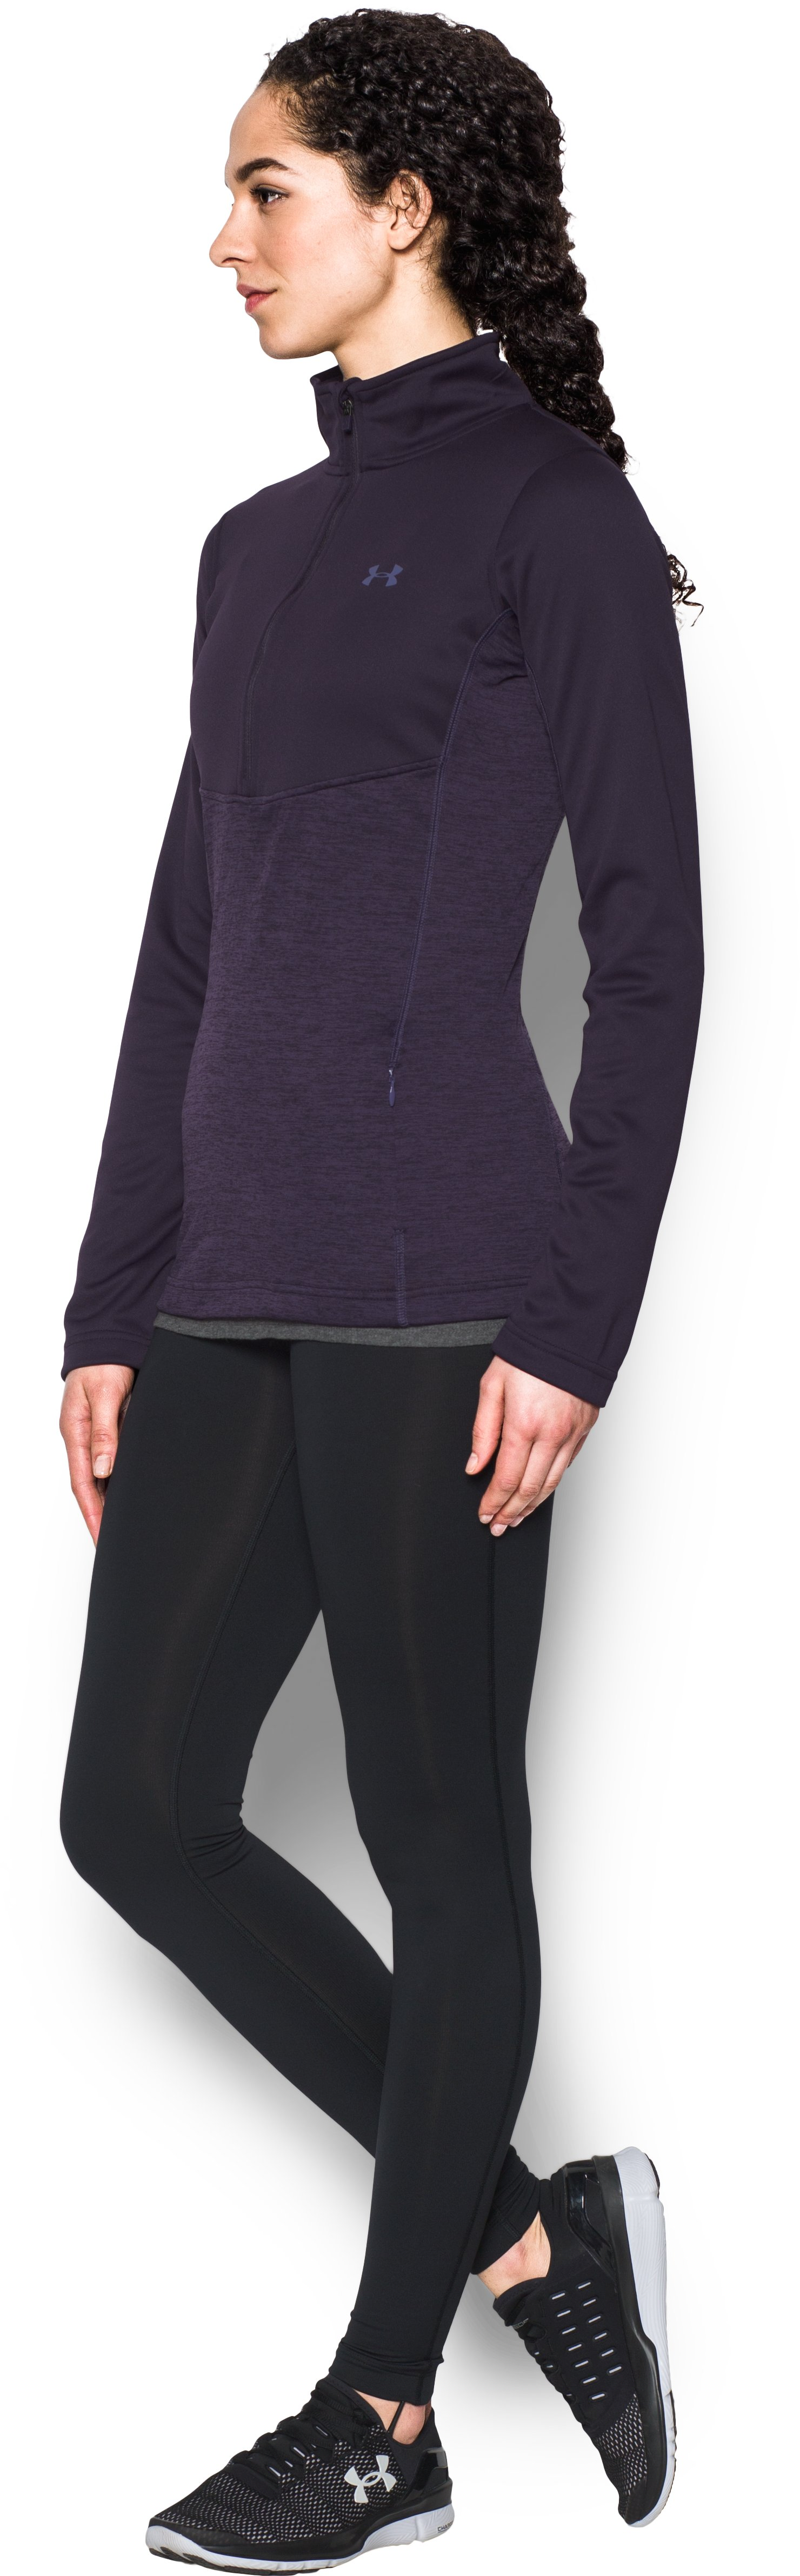 Women's UA Gamutlite 1/2 Zip, IMPERIAL PURPLE